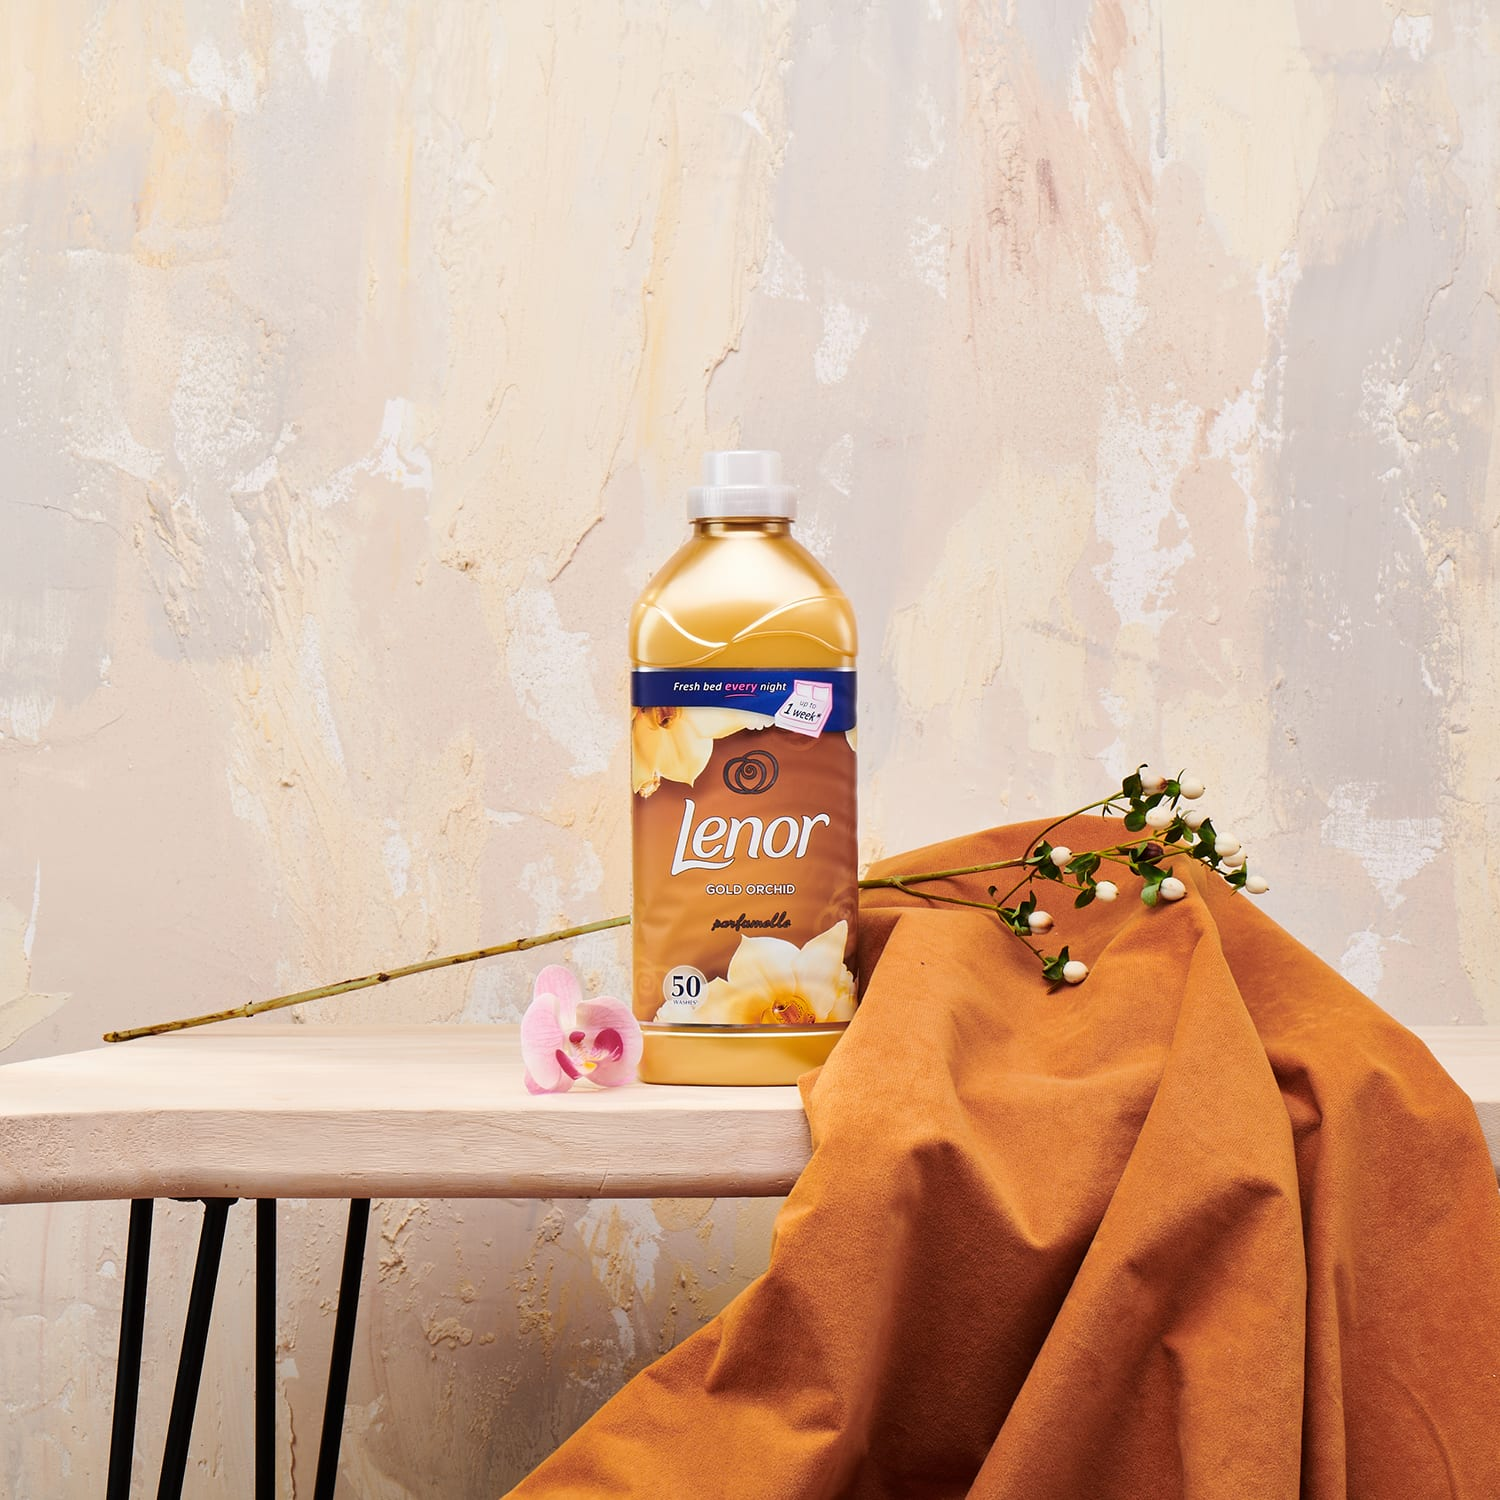 Lenor gold orchid product photo